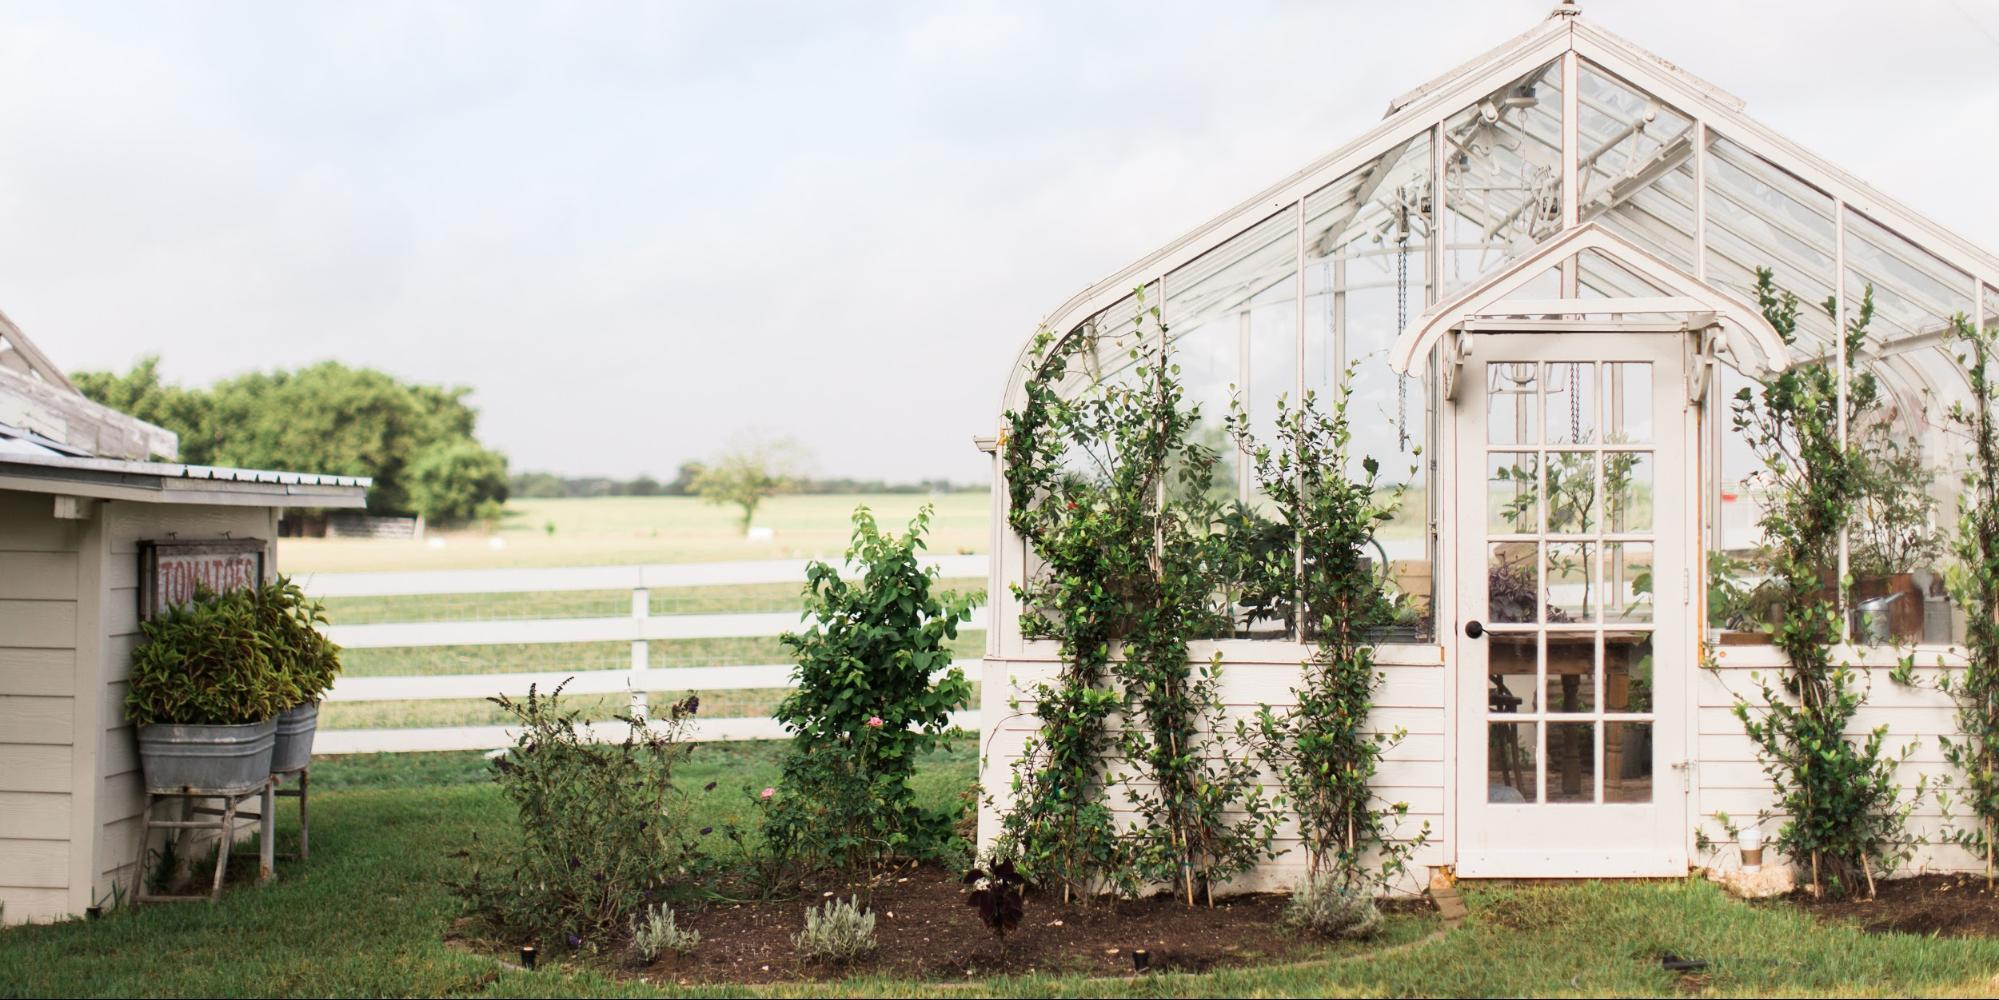 Greenhouse joanna gaines